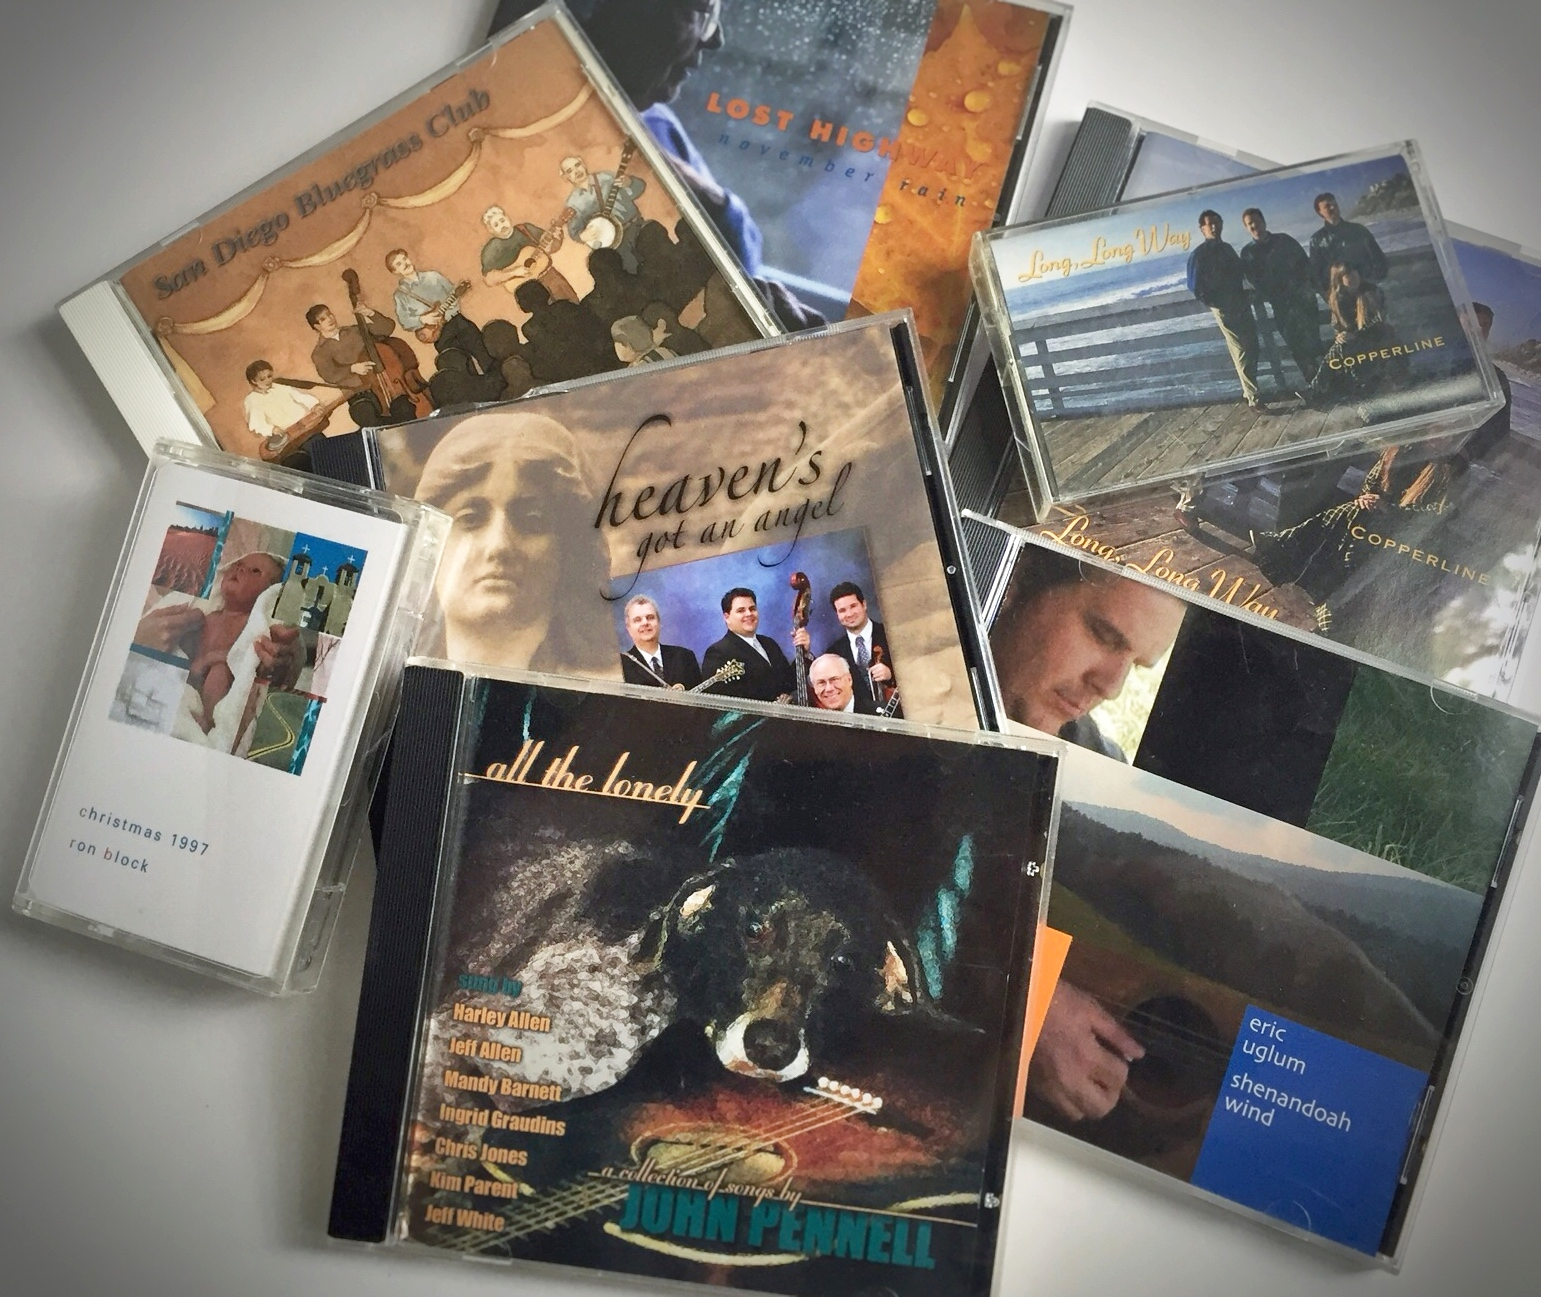 I've had a lot of fun creating CD and cassette tape packaging for musicians John Pennell, Eric Uglum, Ron Block, Copperline, Hwy 52, and the San Diego Bluegrass Club. Really getting to know the artists and the music allows me to match the images and design to their individual styles.